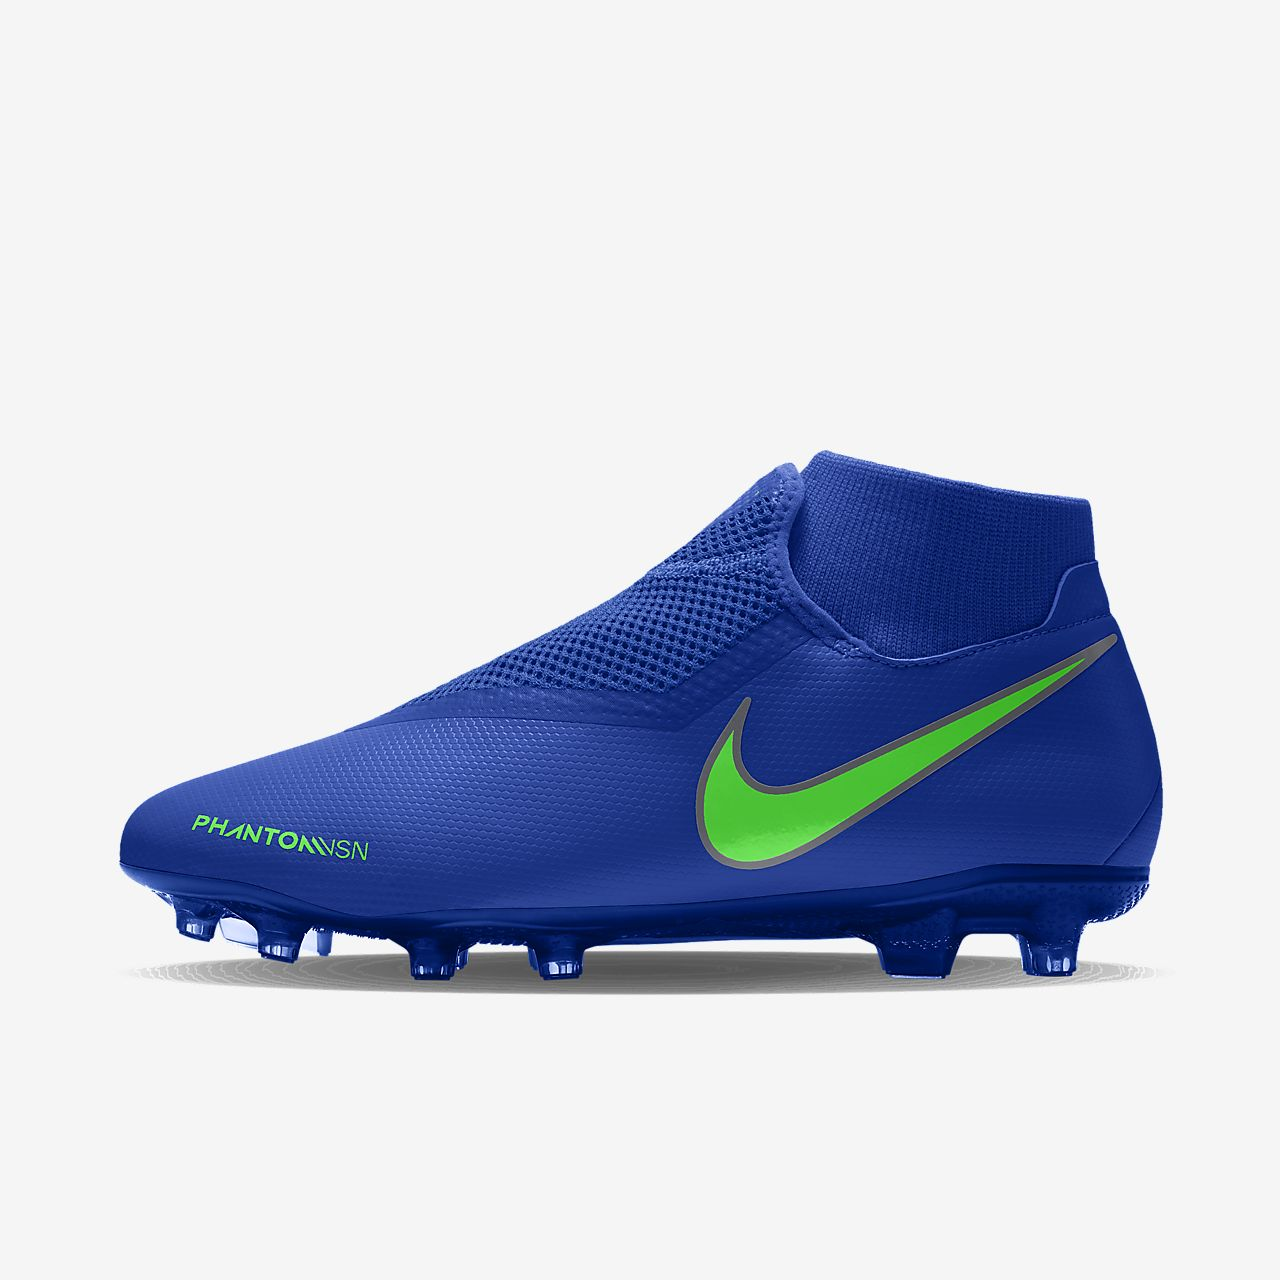 Chaussure de football à crampons multi surfaces personnalisable Nike Phantom Vision Academy MG By You